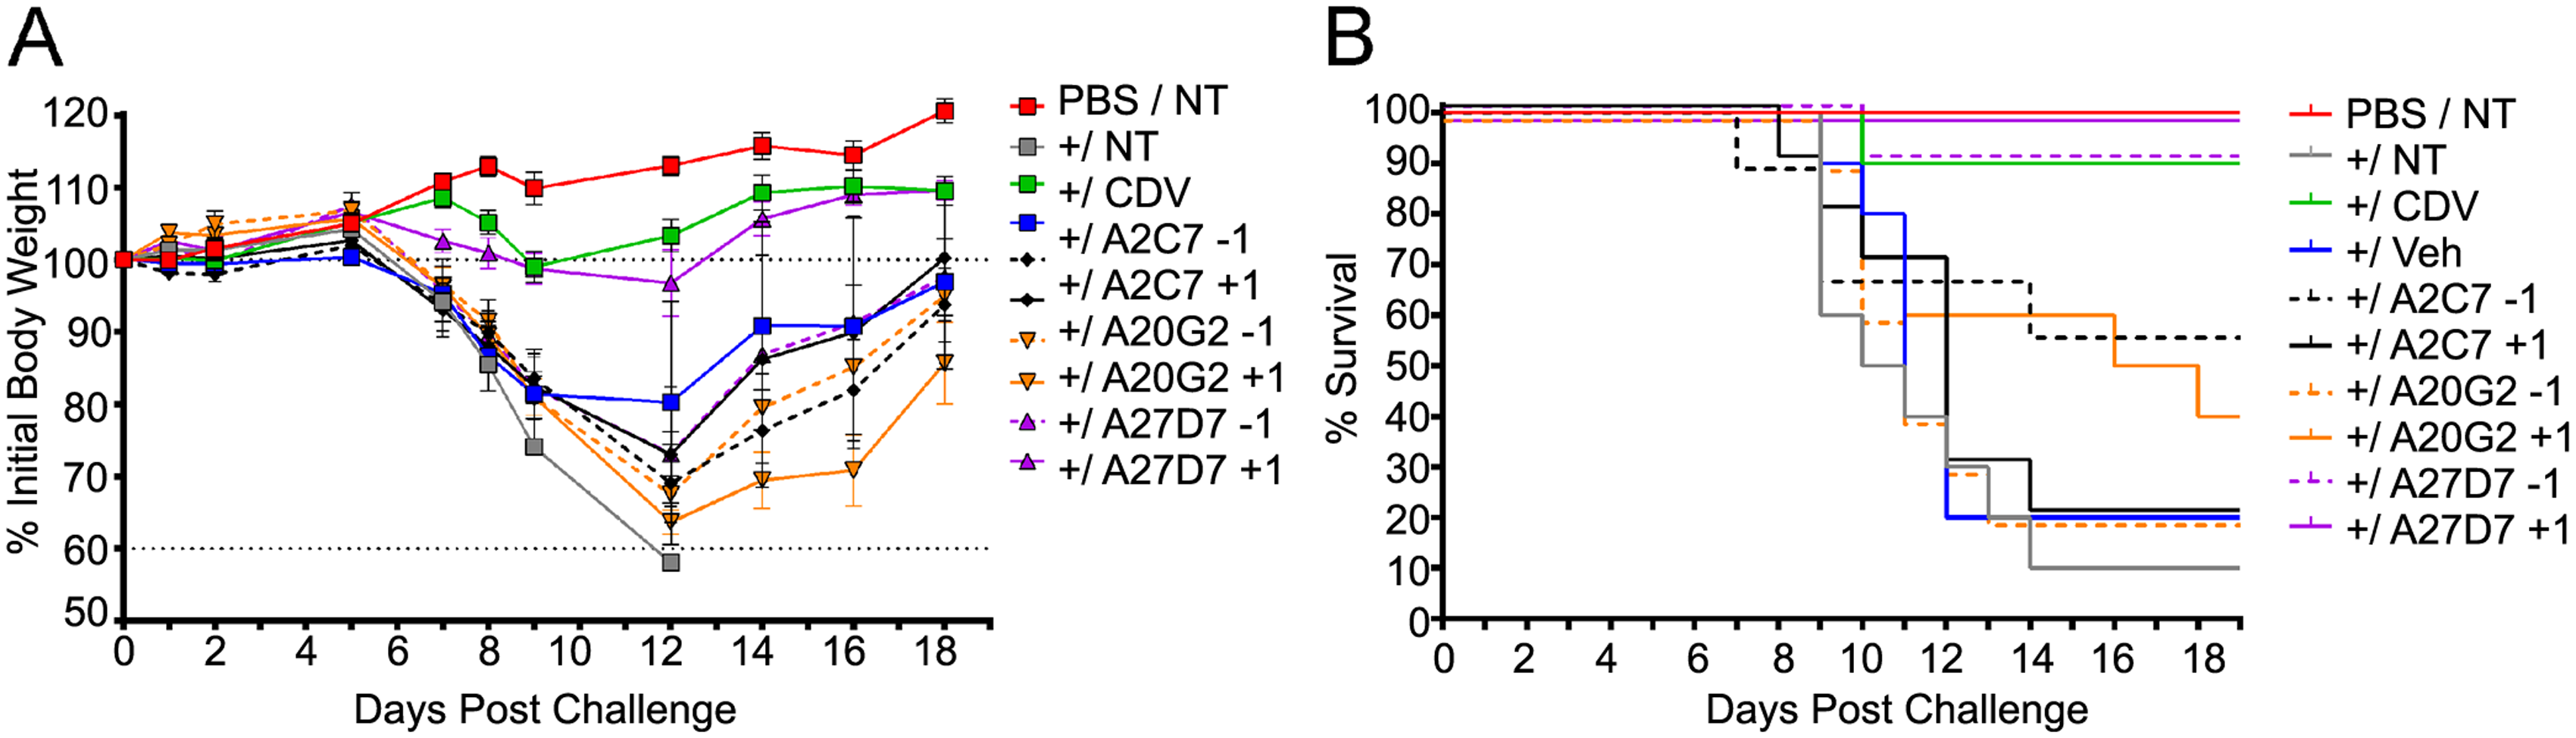 Treatment with antibody A27D7 protects mice against a lethal ECTV challenge.